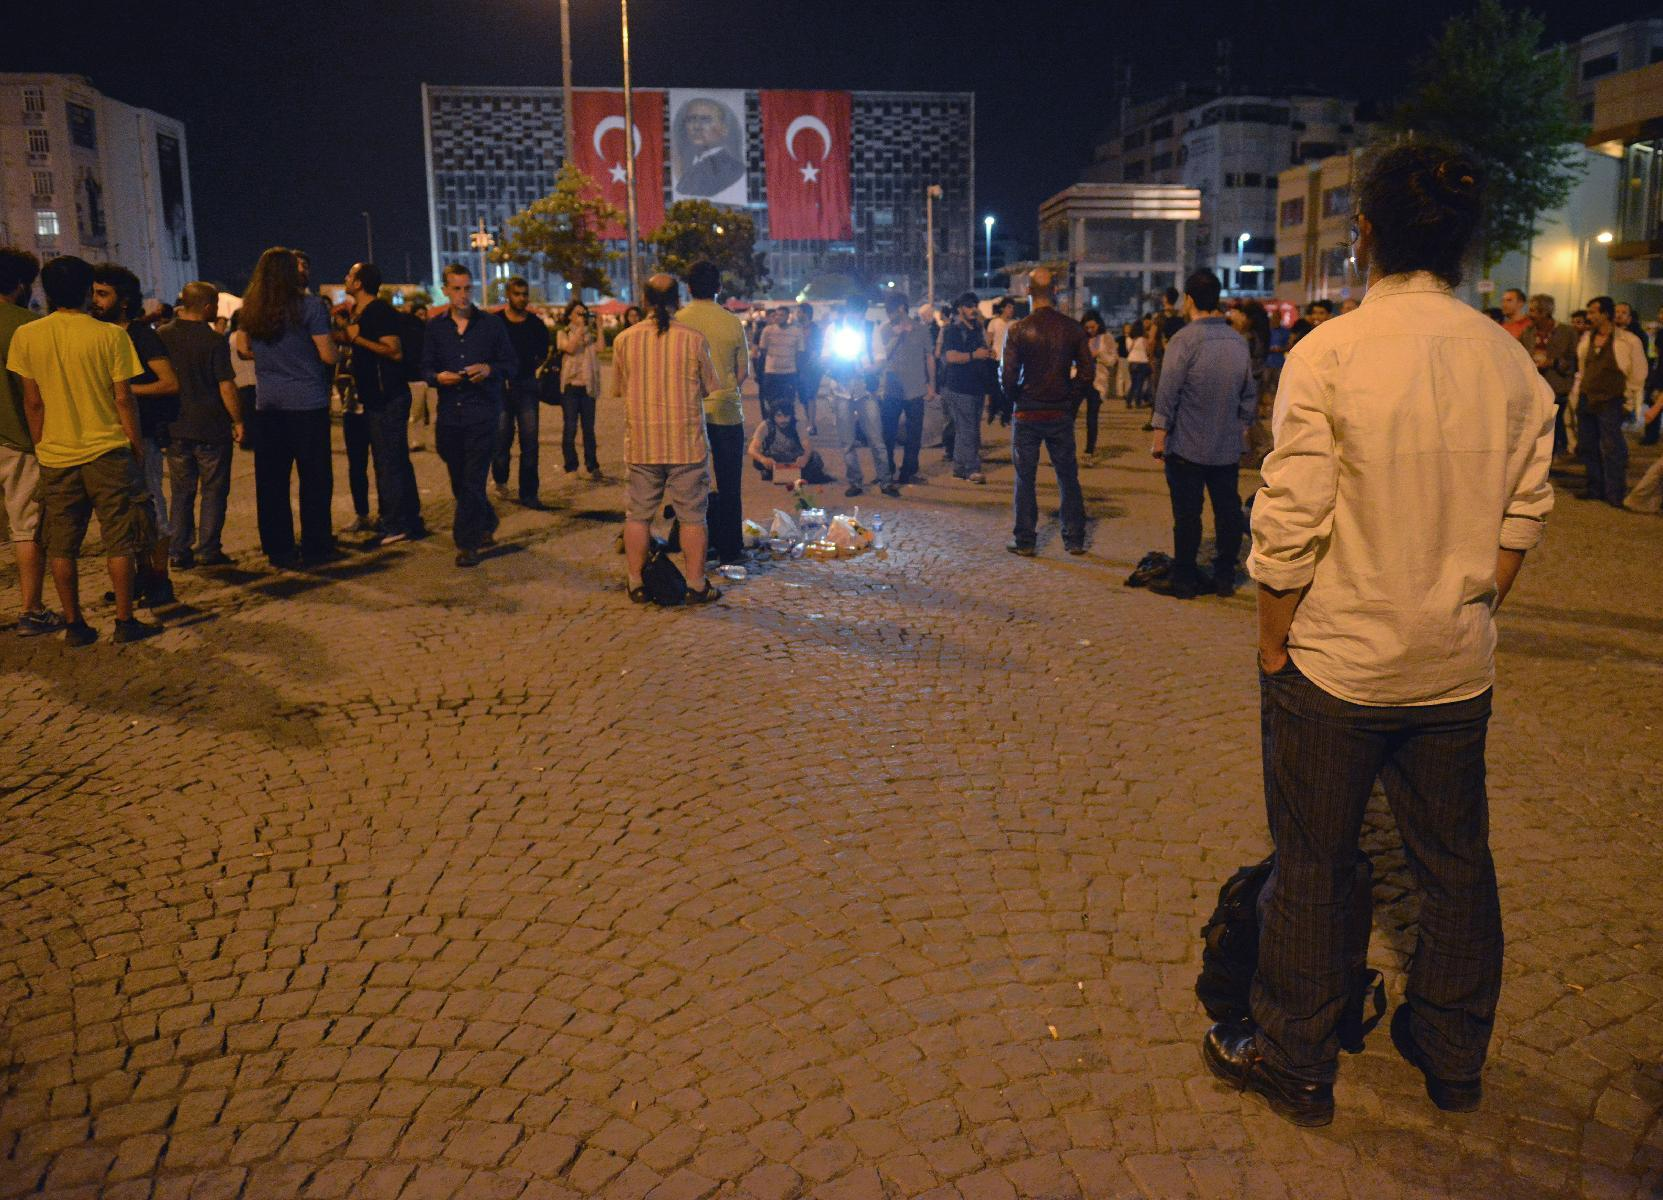 Erdem Gunduz, right, stands silently on Taksim Square in Istanbul, Turkey, early Tuesday, June 18, 2013. After weeks of confrontation with police, sometimes violent, Turkish protesters are using a new form of resistance: standing silently. The development started late Monday when a solitary man began standing in passive defiance against Prime Minister Recep Tayyip Erdogan's authority at Istanbul's central Taksim Square. The square has been sealed off from mass protests since police cleared it over the weekend. The man has identified himself as Erdem Gunduz, a performance artist. His act has sparked imitation by others in Istanbul and other cities. It has provoked widespread comment on social media. (AP Photo)